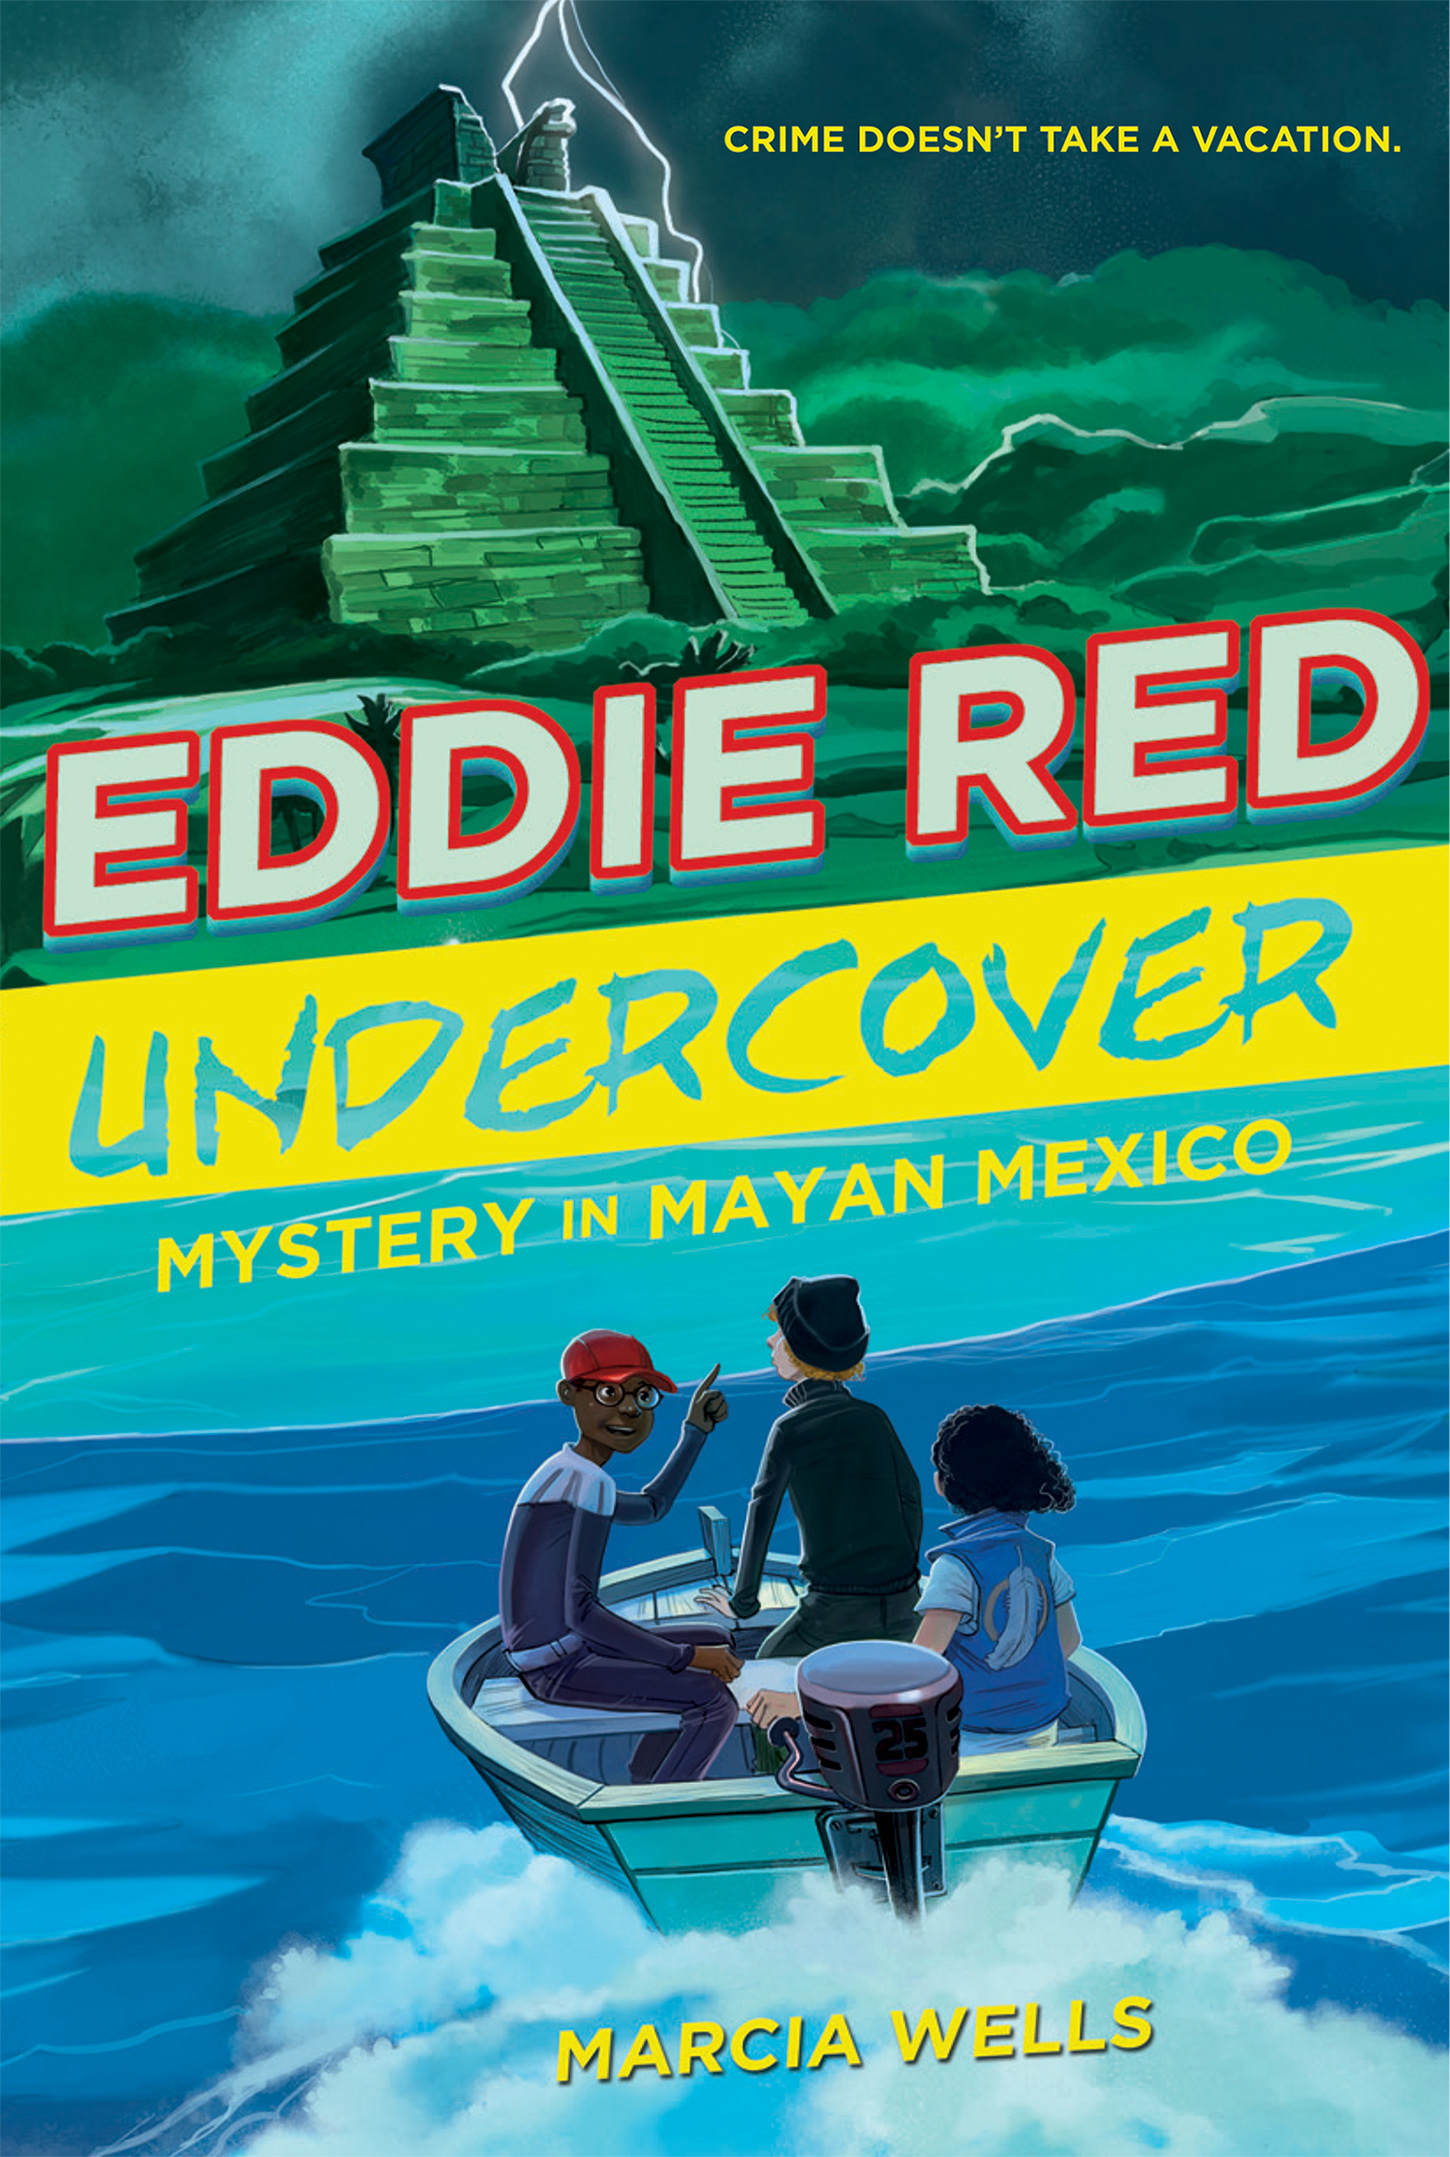 Eddie Red Undercover: Mystery in Mayan Mexico-9780544668508